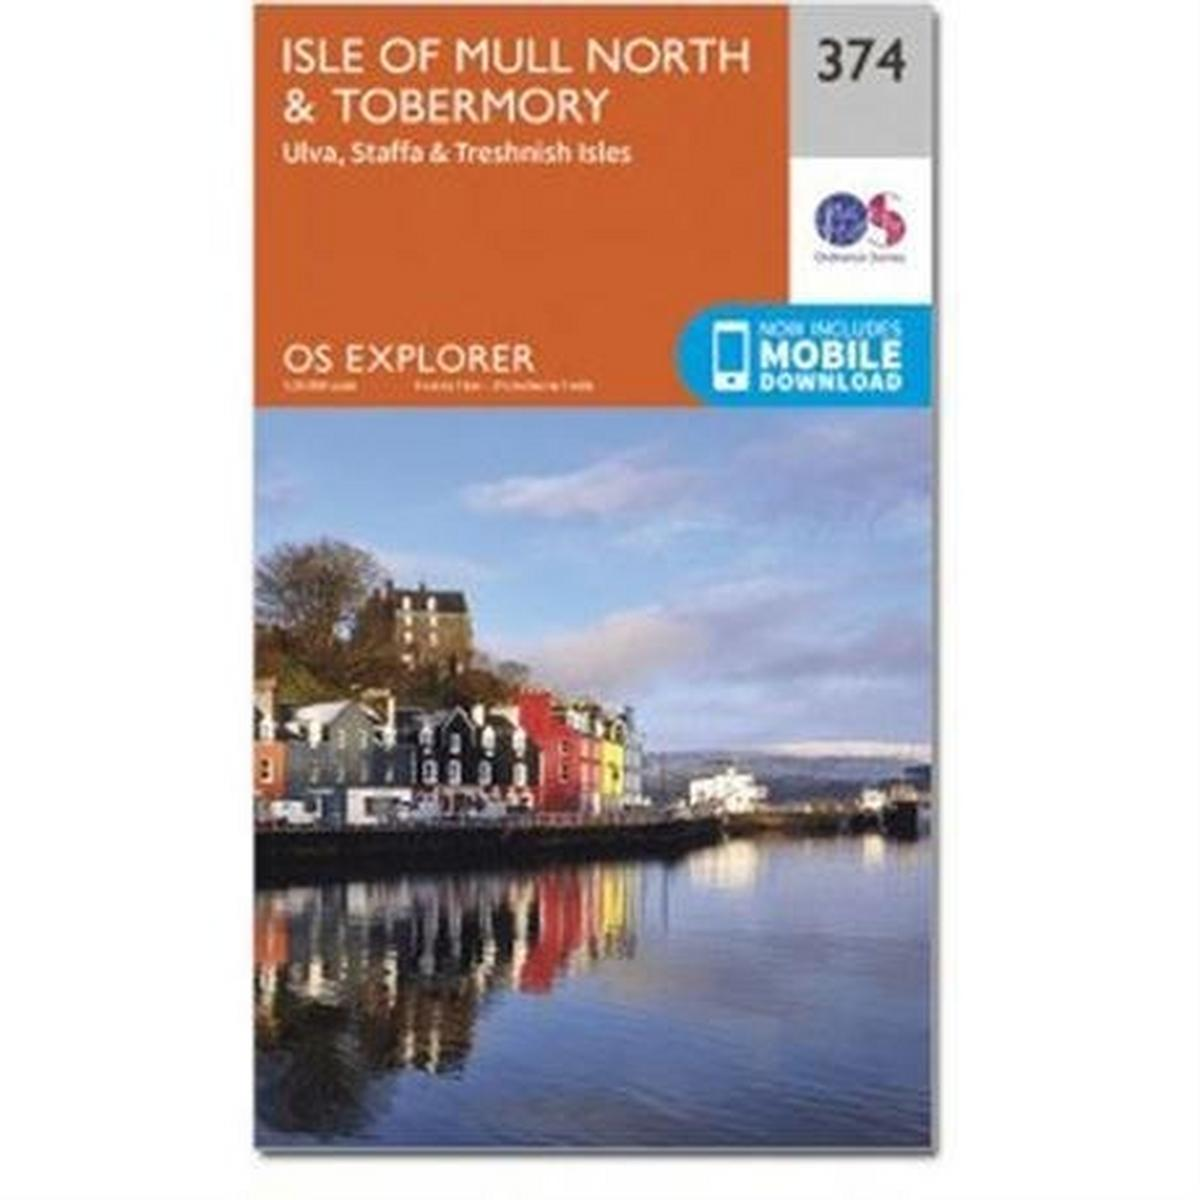 Ordnance Survey OS Explorer Map 374 Isle of Mull North and Tobermory